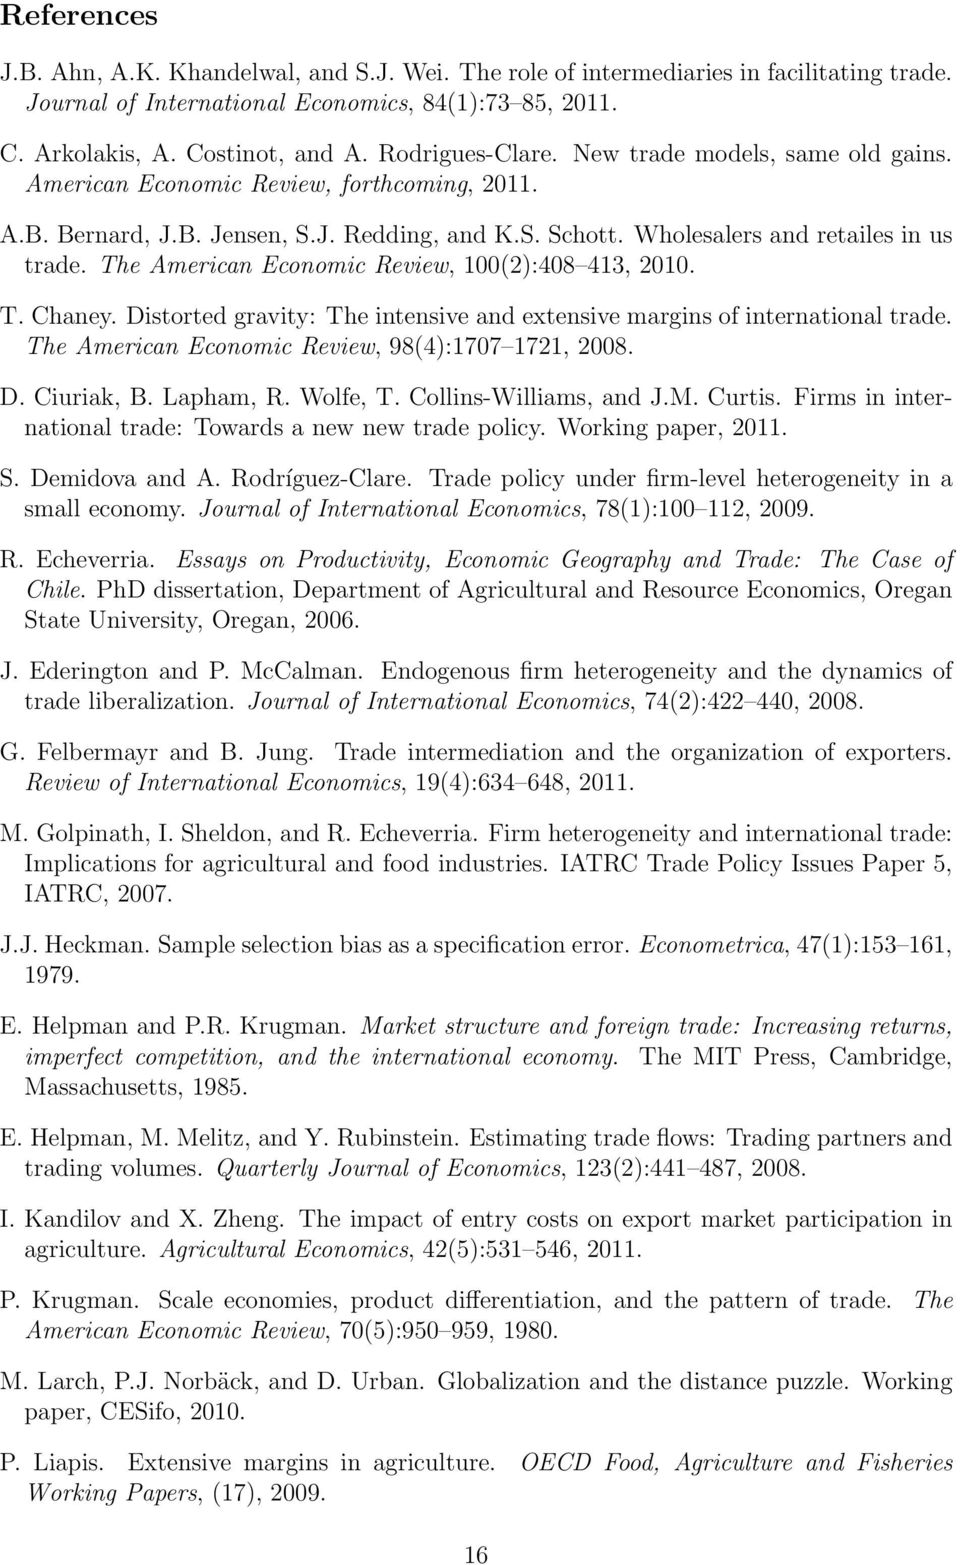 The American Economic Review, 100(2):408 413, 2010. T. Chaney. Distorted gravity: The intensive and extensive margins of international trade. The American Economic Review, 98(4):1707 1721, 2008. D. Ciuriak, B.